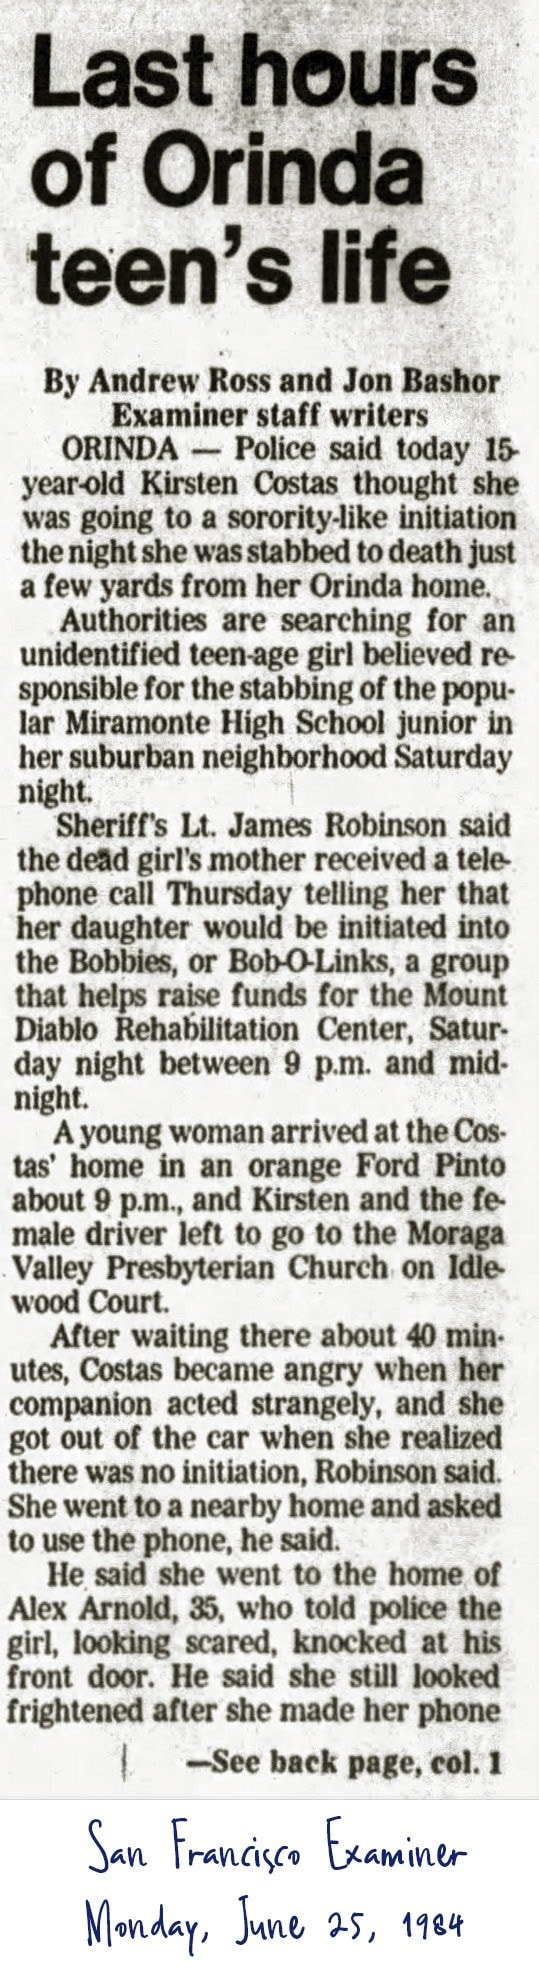 Kirsten Costas murder case front page newspaper story - San Francisco Examiner from June 25 1984